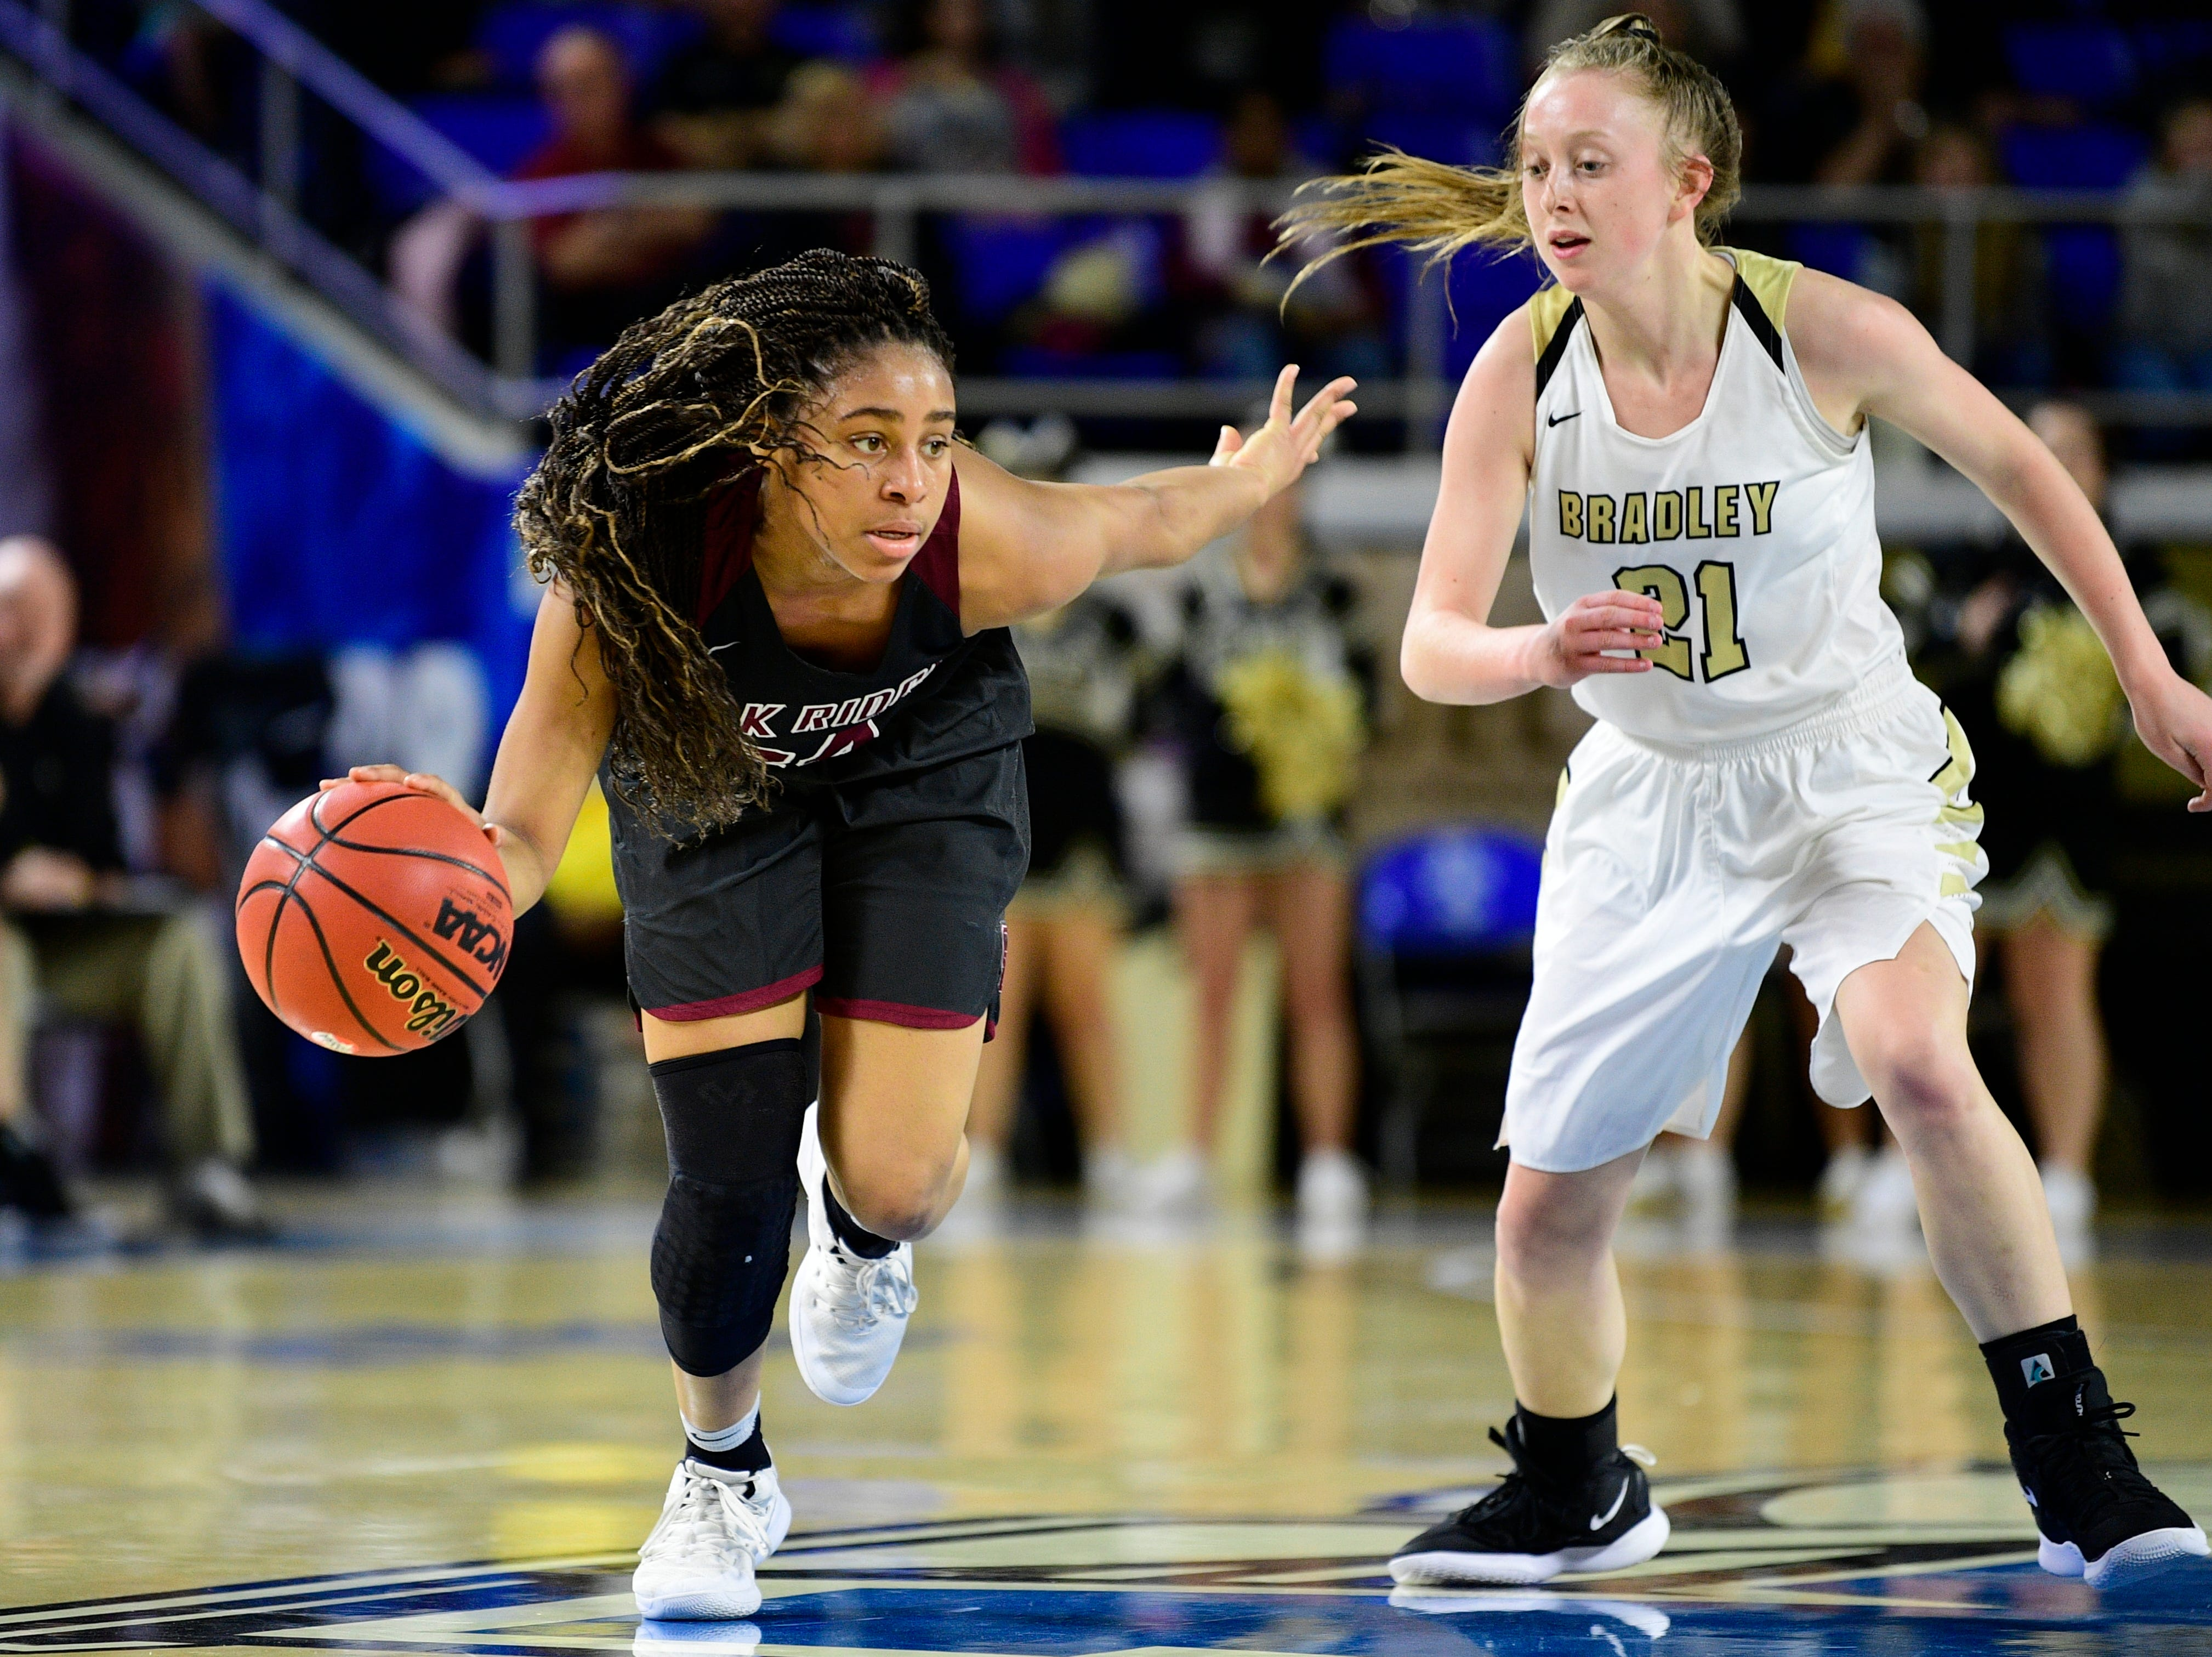 Oak Ridge's Jada Guinn (24) controls the ball as Bradley Central's Cambree Mayo (21) defends during a game between Oak Ridge and Bradley Central at the TSSAA girls state tournament at the Murphy Center in Murfreesboro, Tennessee on Friday, March 8, 2019.